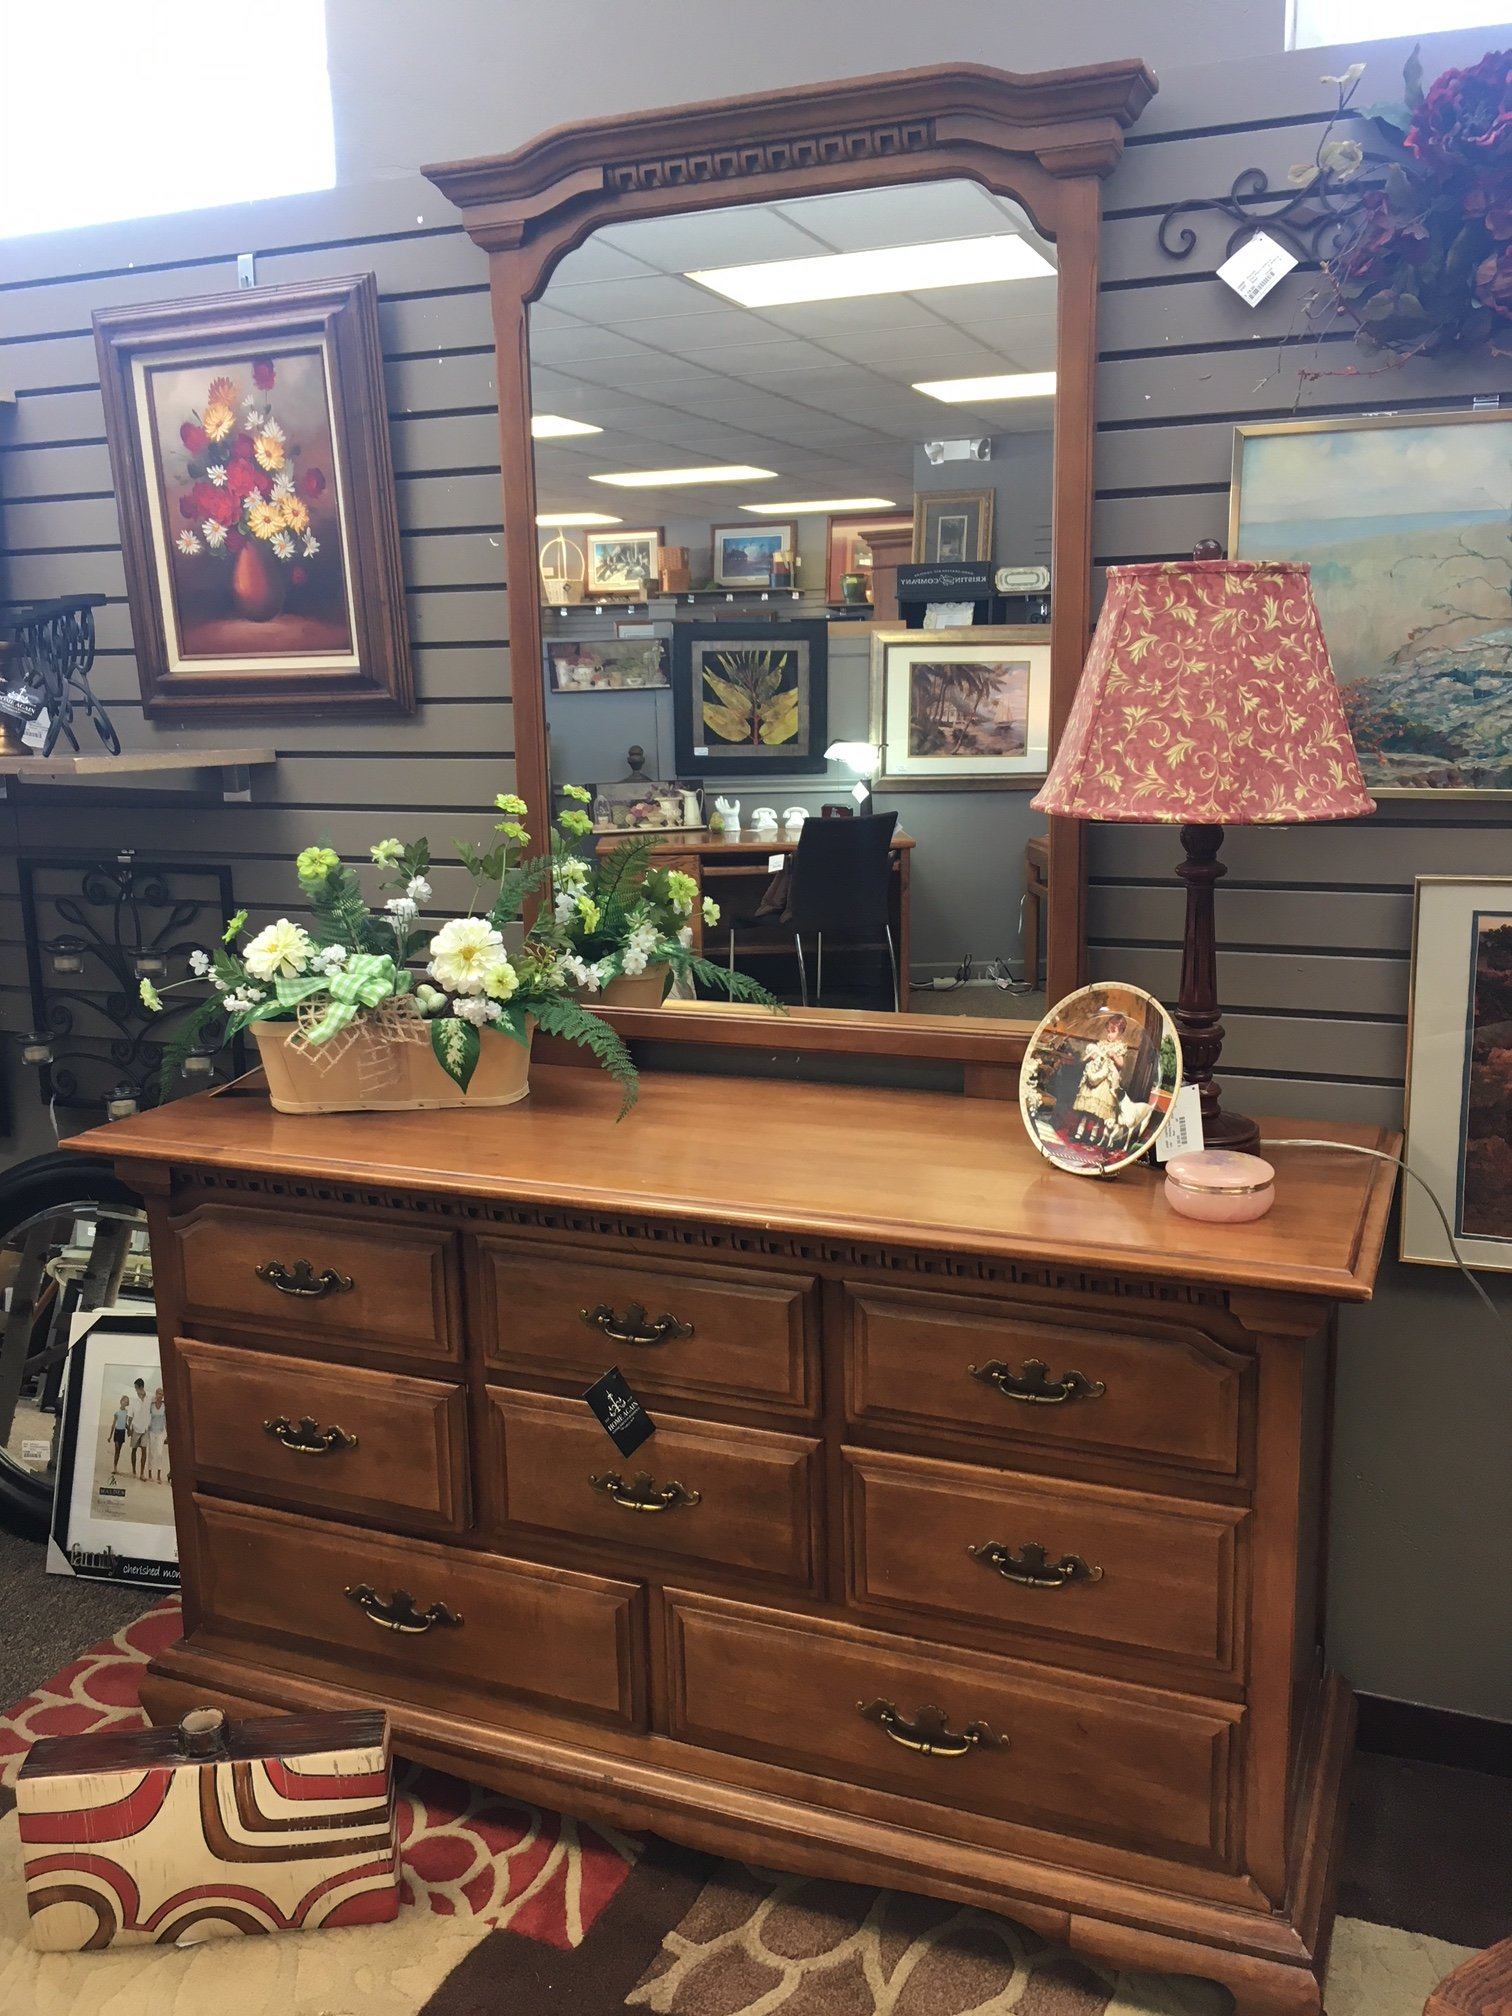 Thomasville maple dresser with mirror.